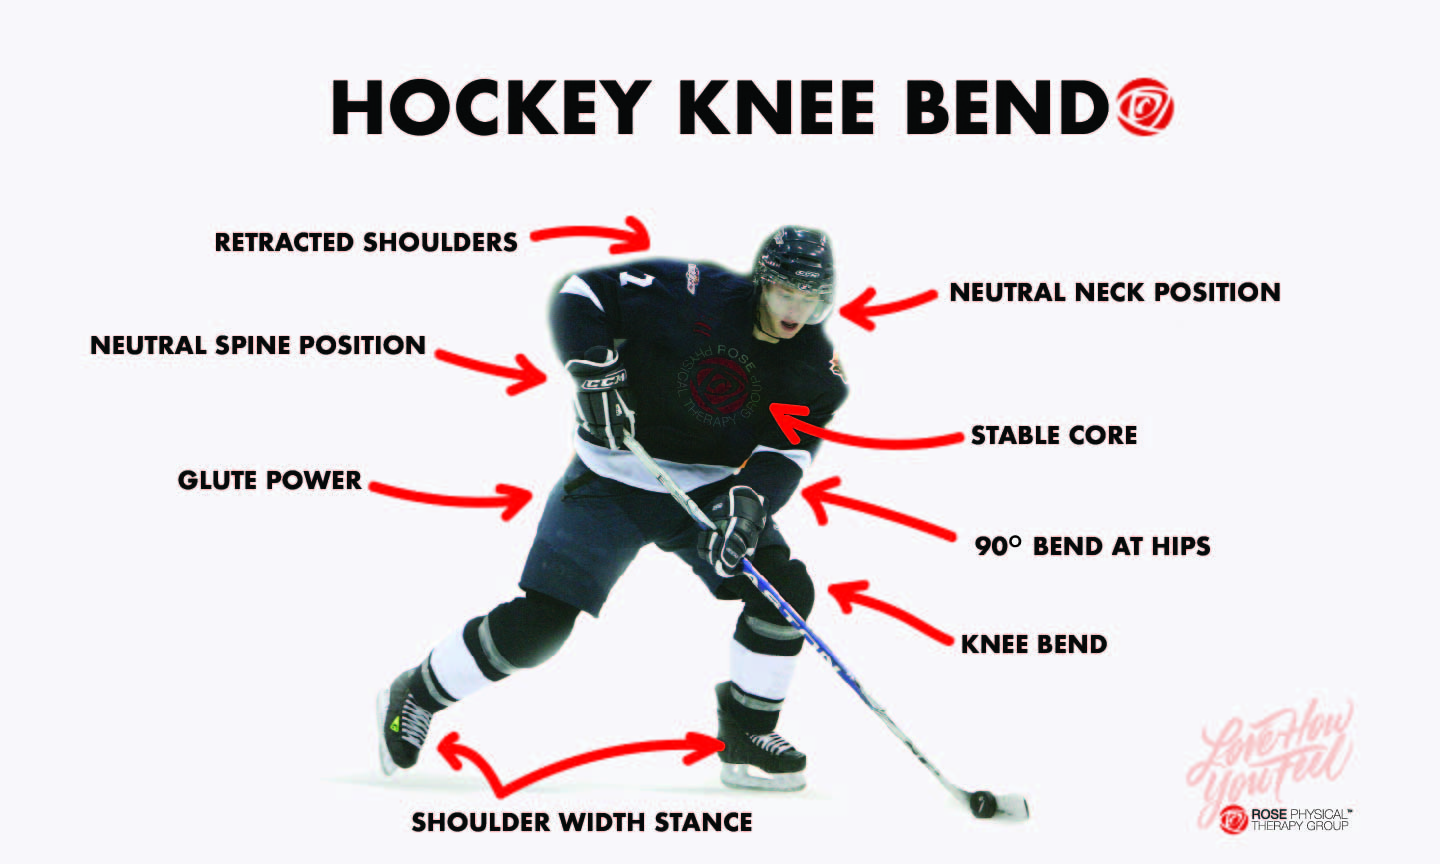 hockey stance knee bend physical therapy